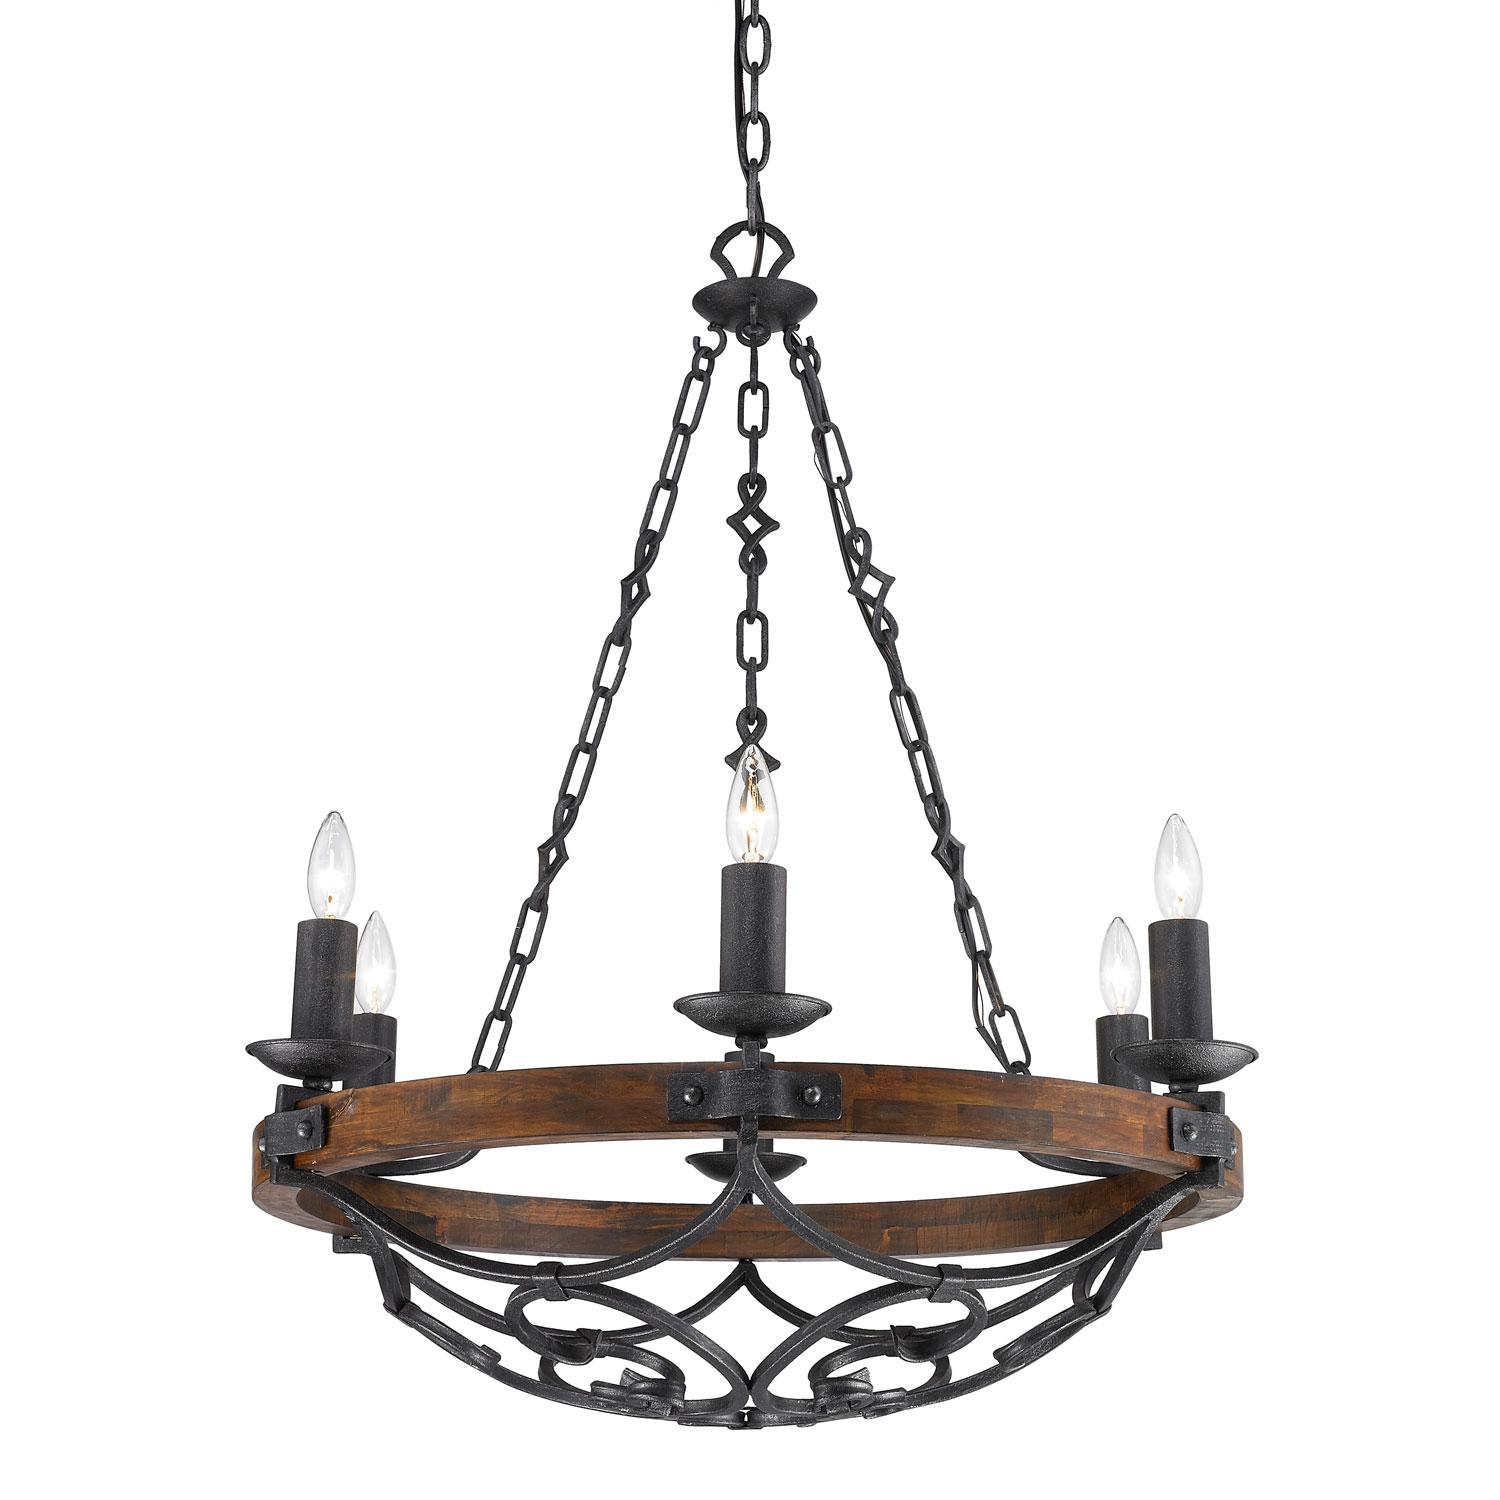 Black Chandeliers 500 Crystal Wrought Iron Mini Chandeliers With Wrought Iron Chandelier (Image 3 of 15)